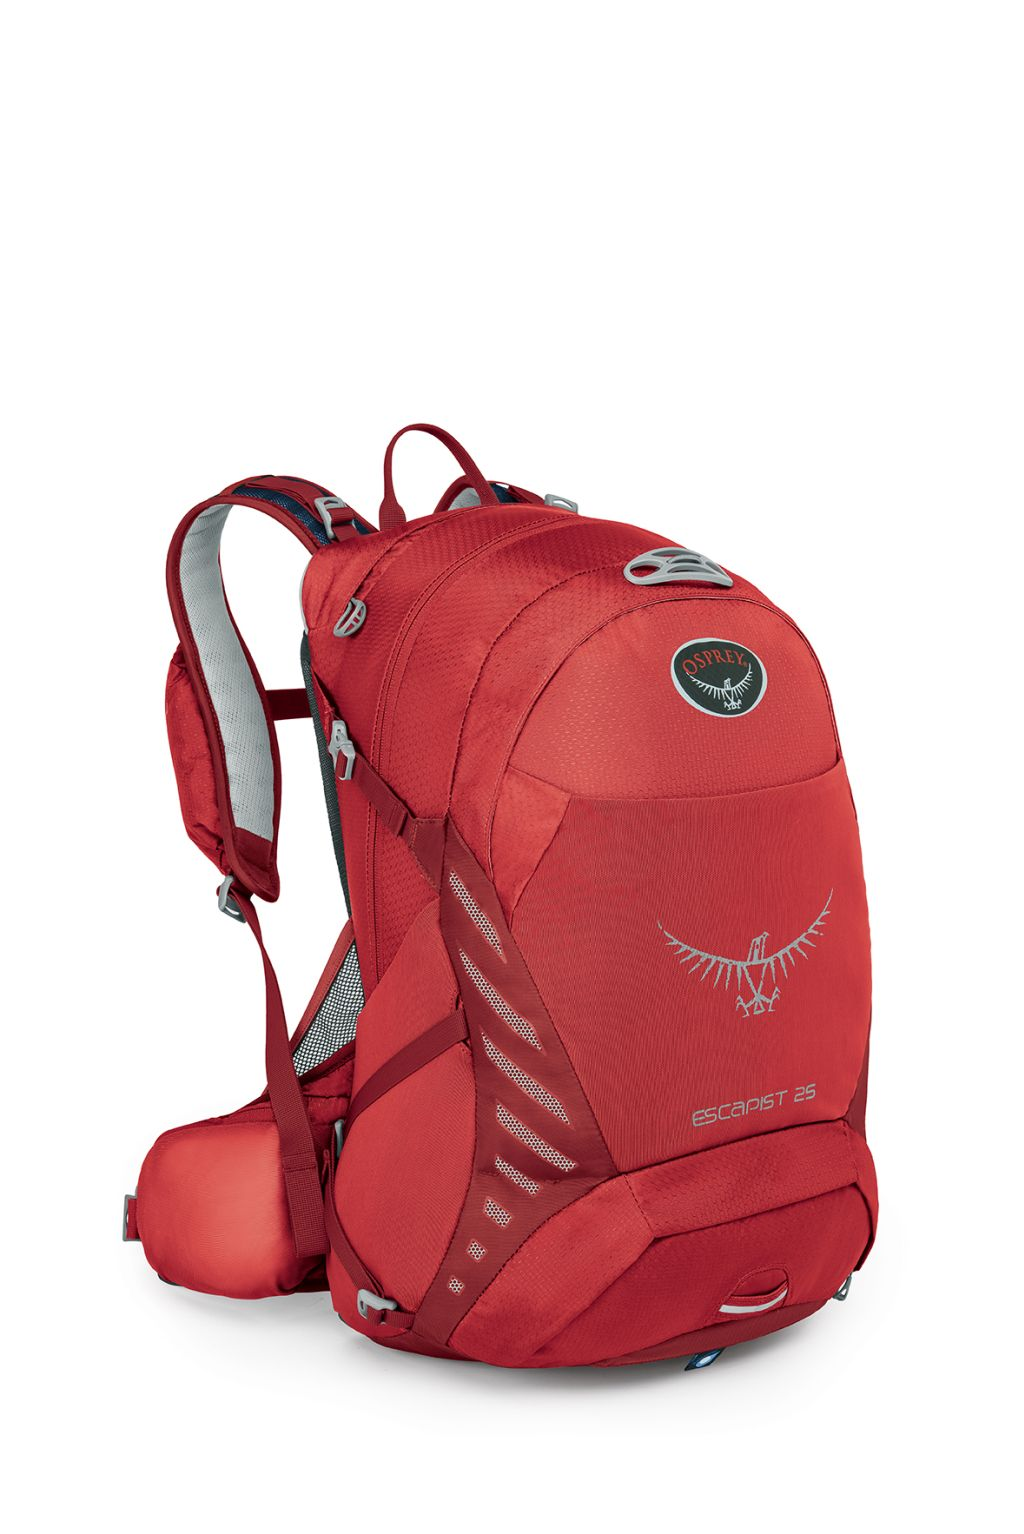 Osprey Escapist 25 Cayenne Red-30